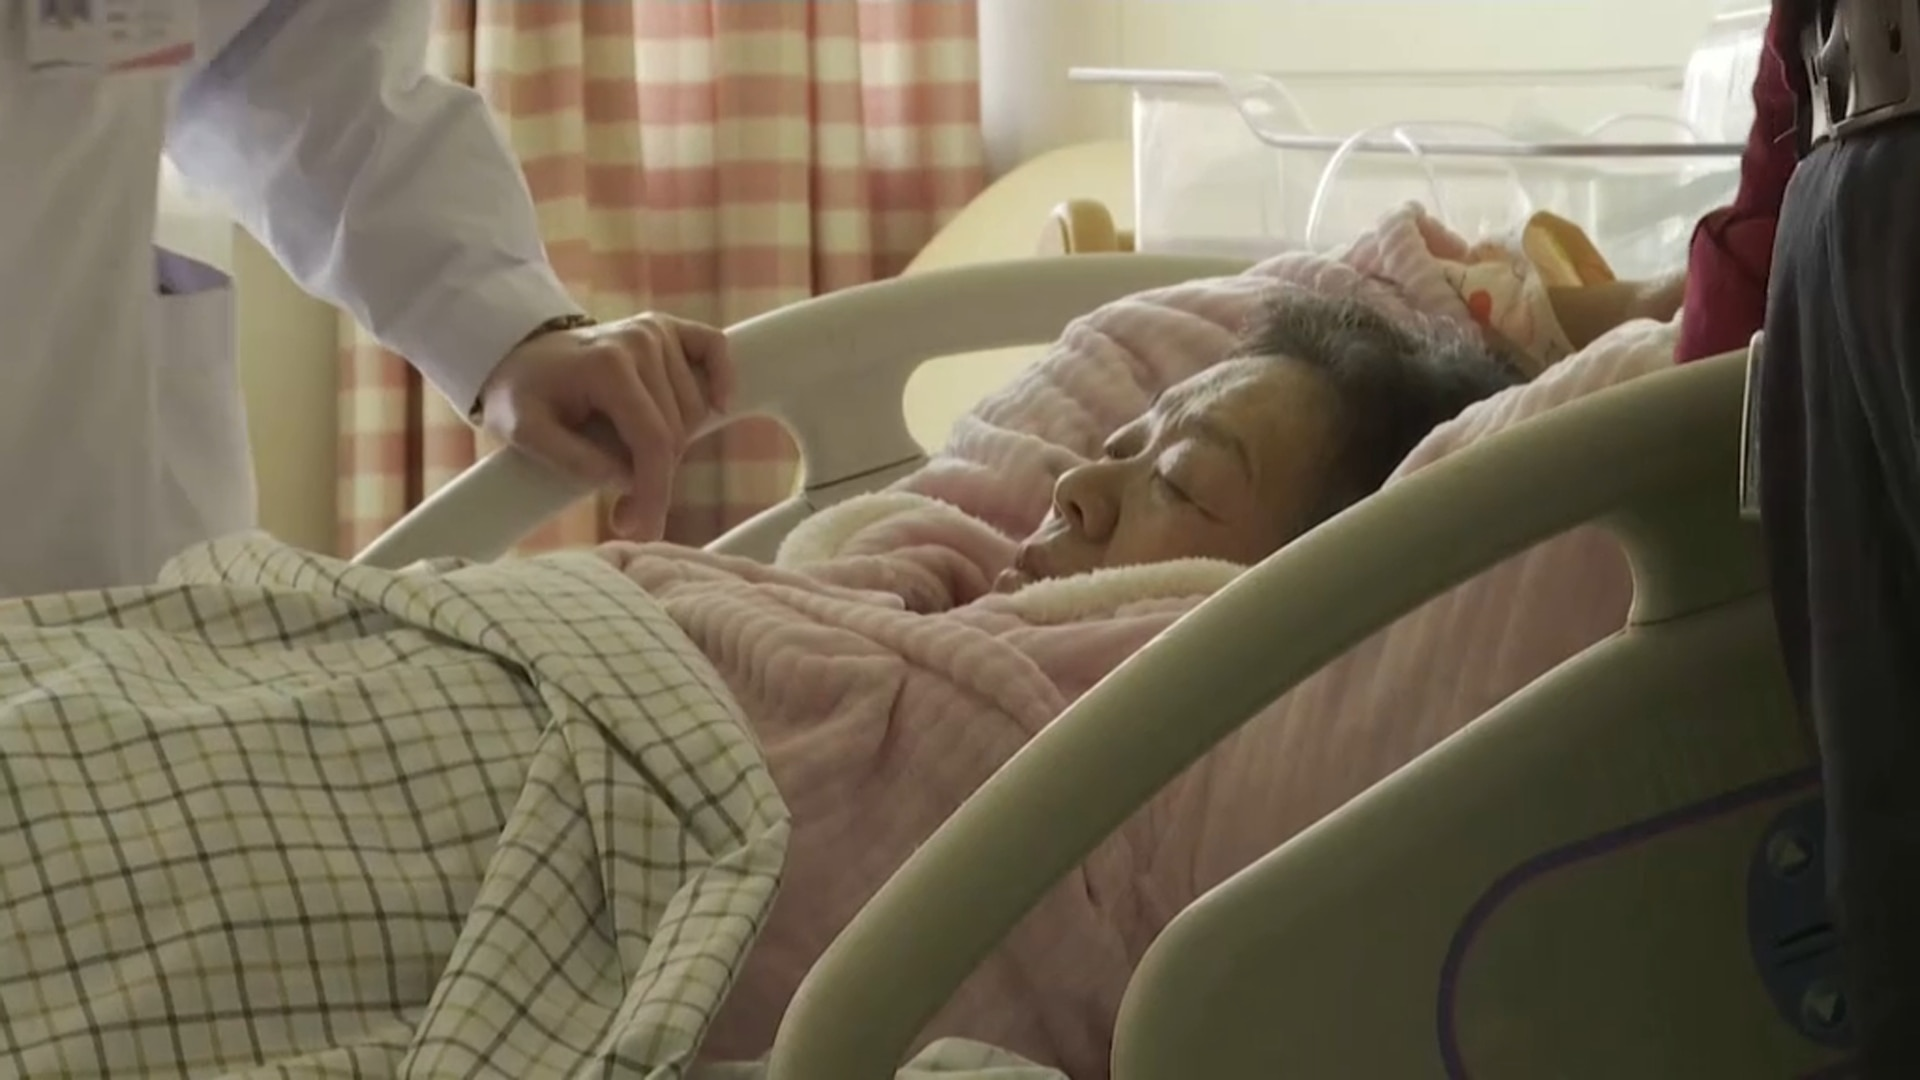 67-year-old becomes China's 'oldest new mother'